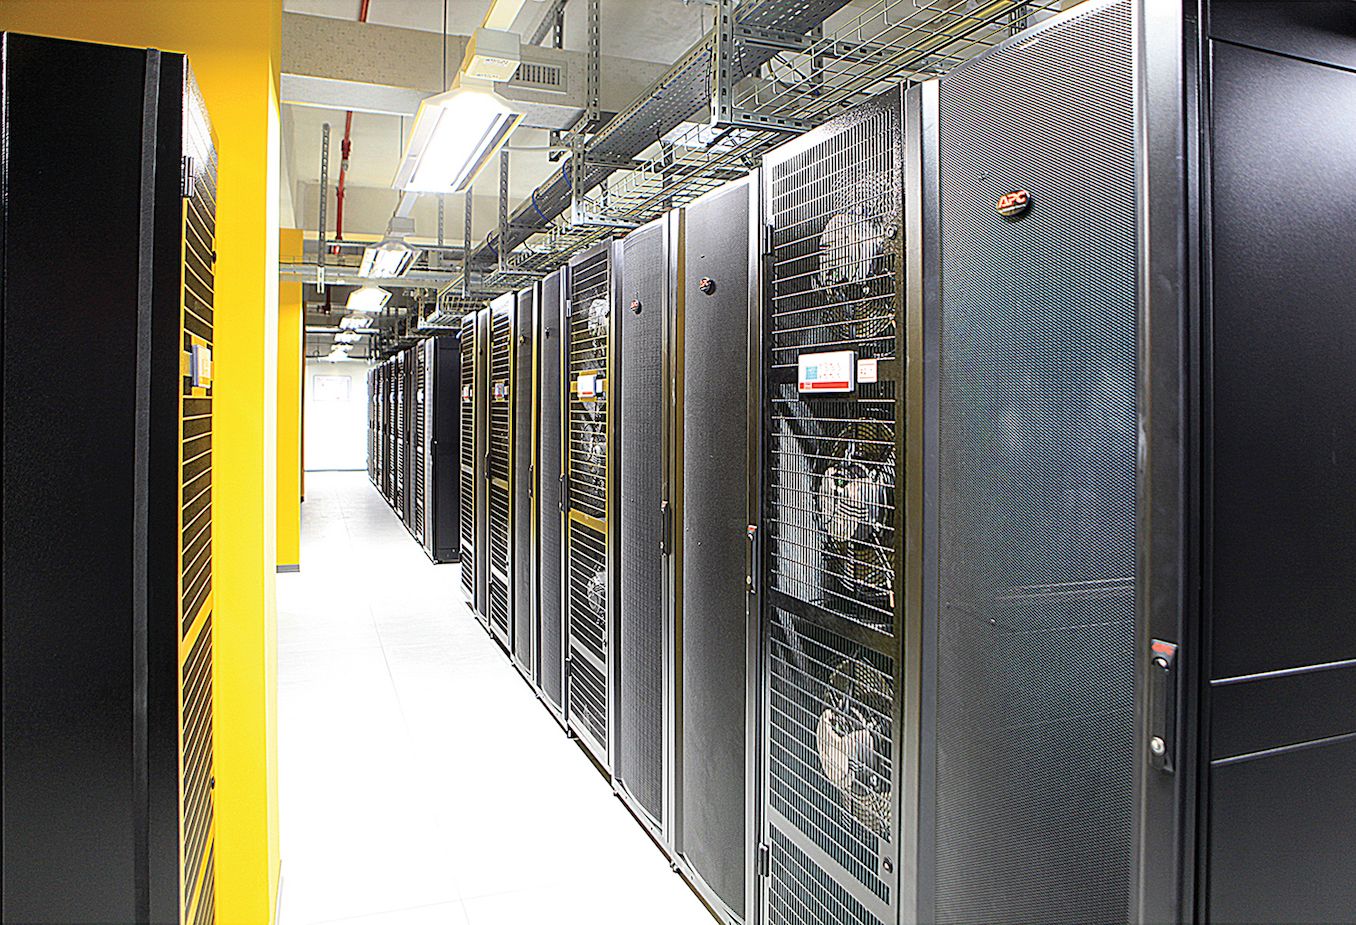 Figure 3. Data room Cold Aisle